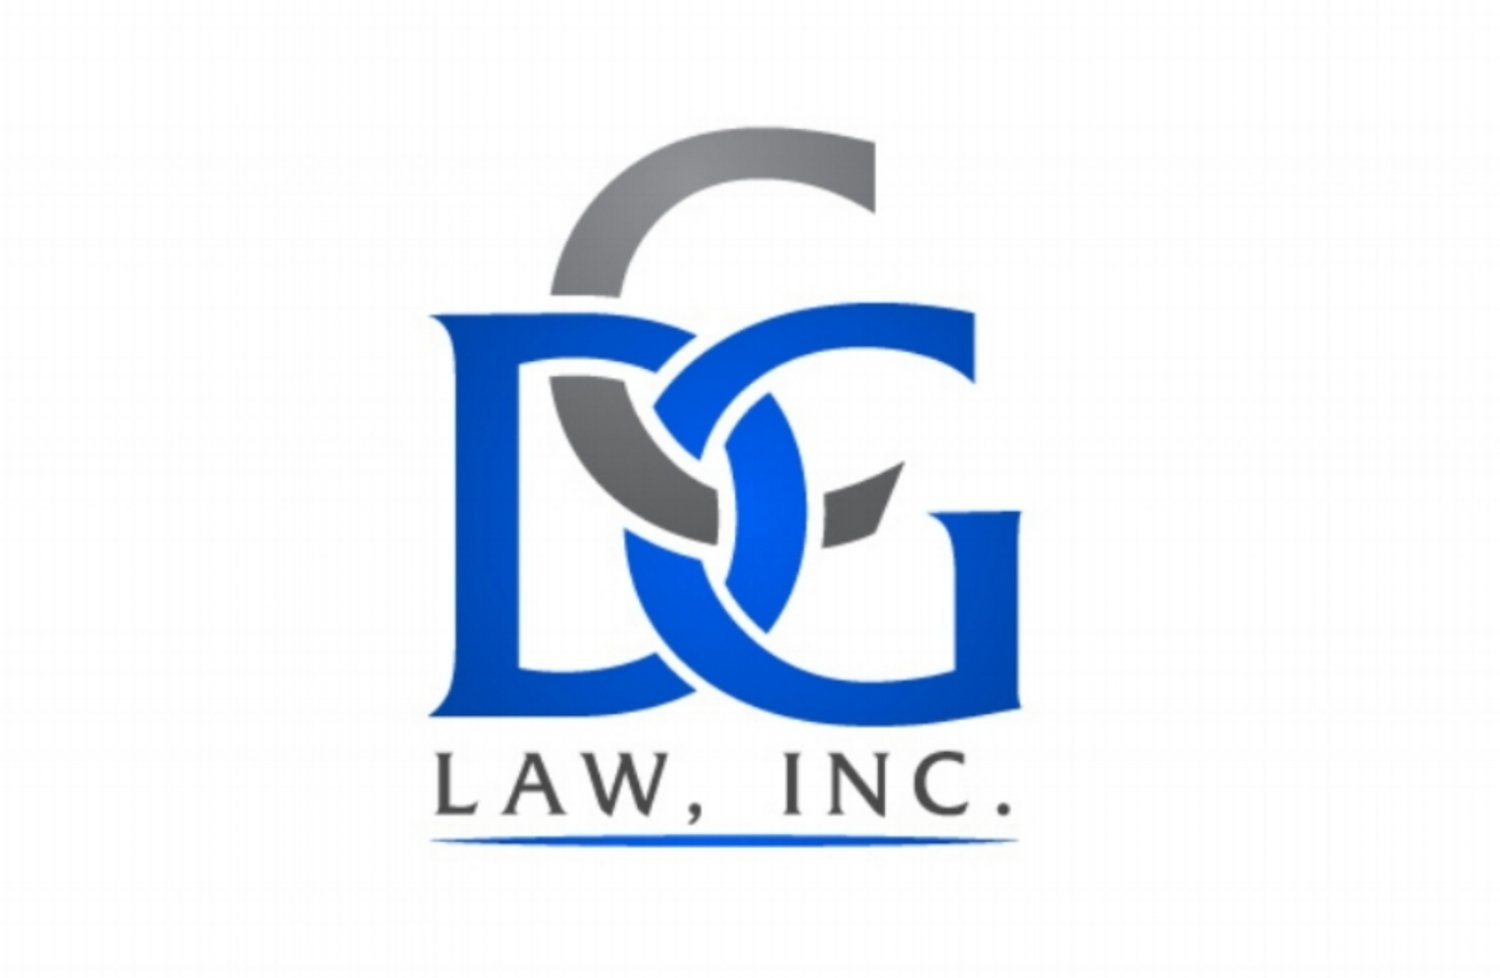 CDG Law, Inc.